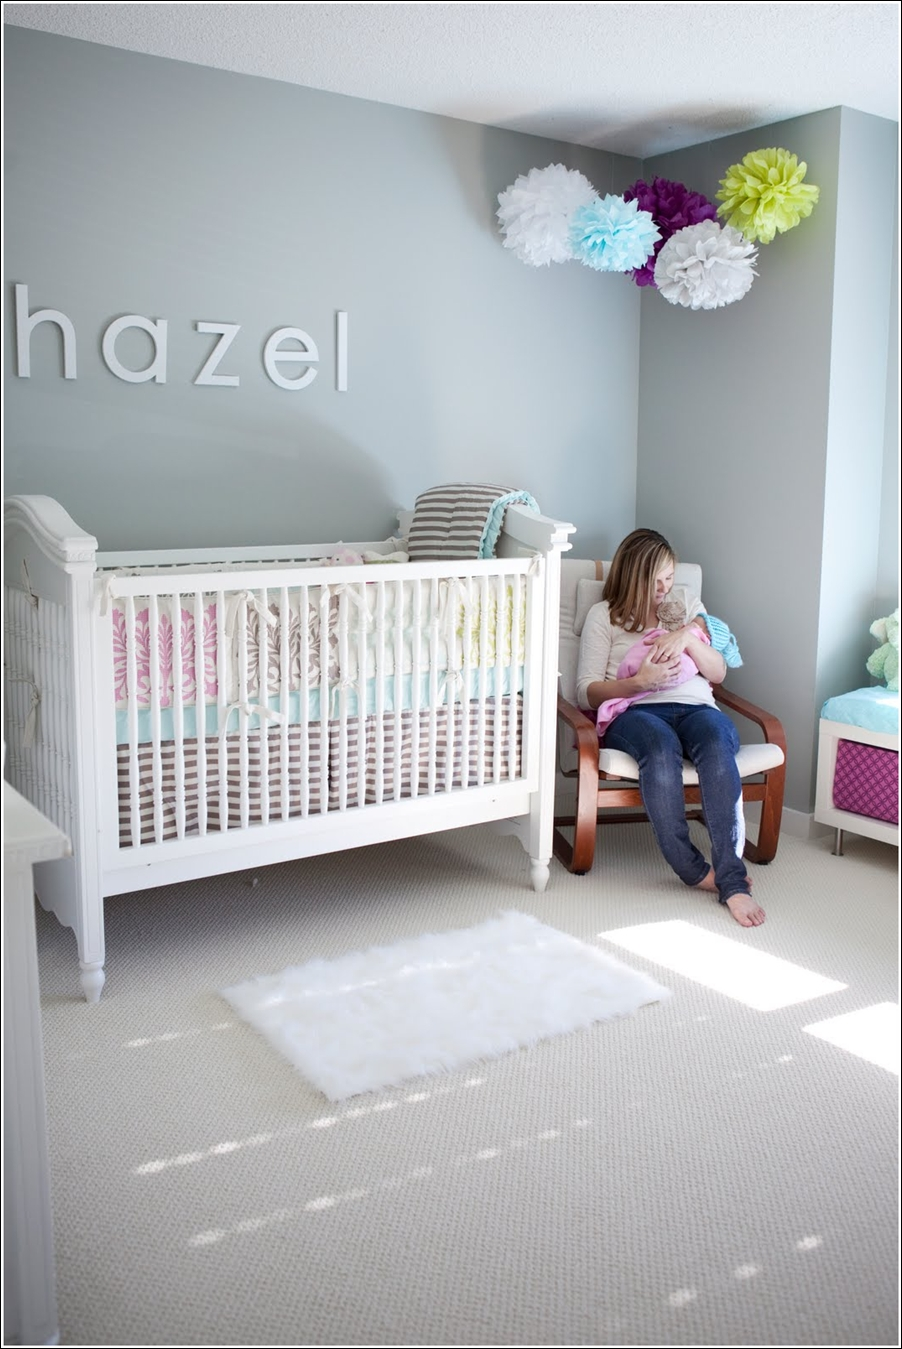 Decorate Your Darling Baby's Nursery with Pom Poms!